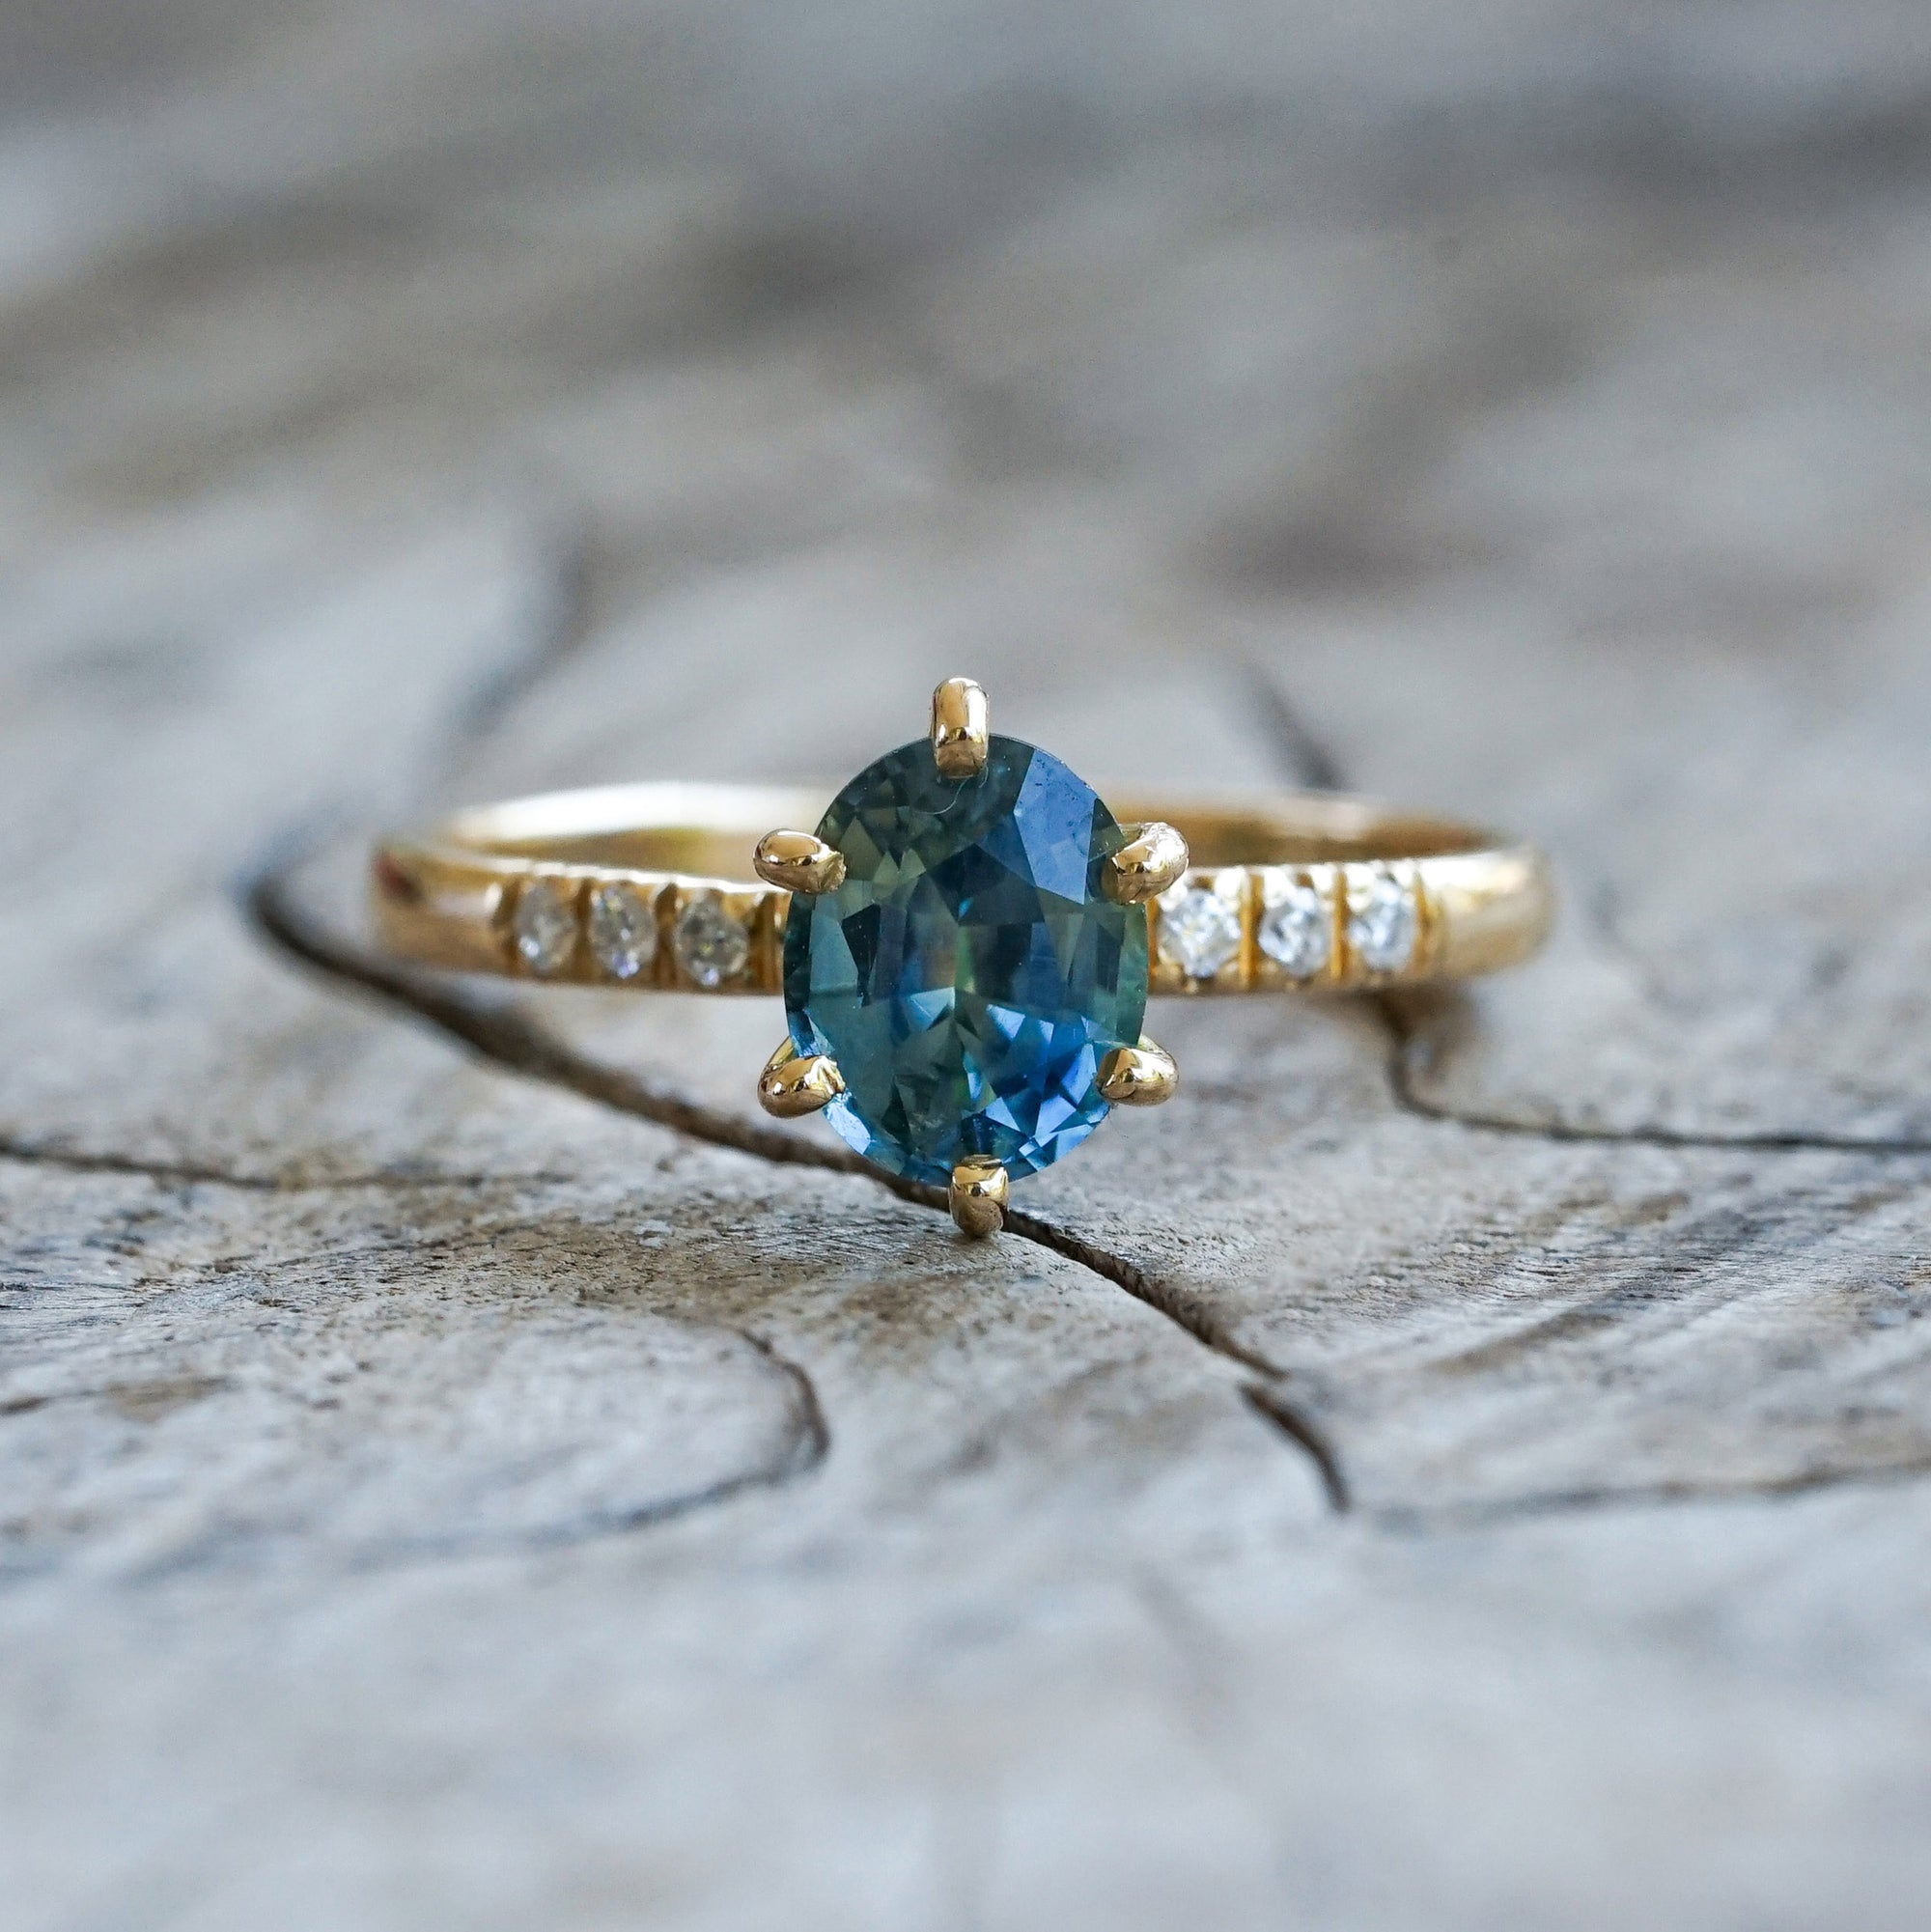 AA Oval Mermaid Sapphire Ring in Eco Gold - Gardens of the Sun Jewelry